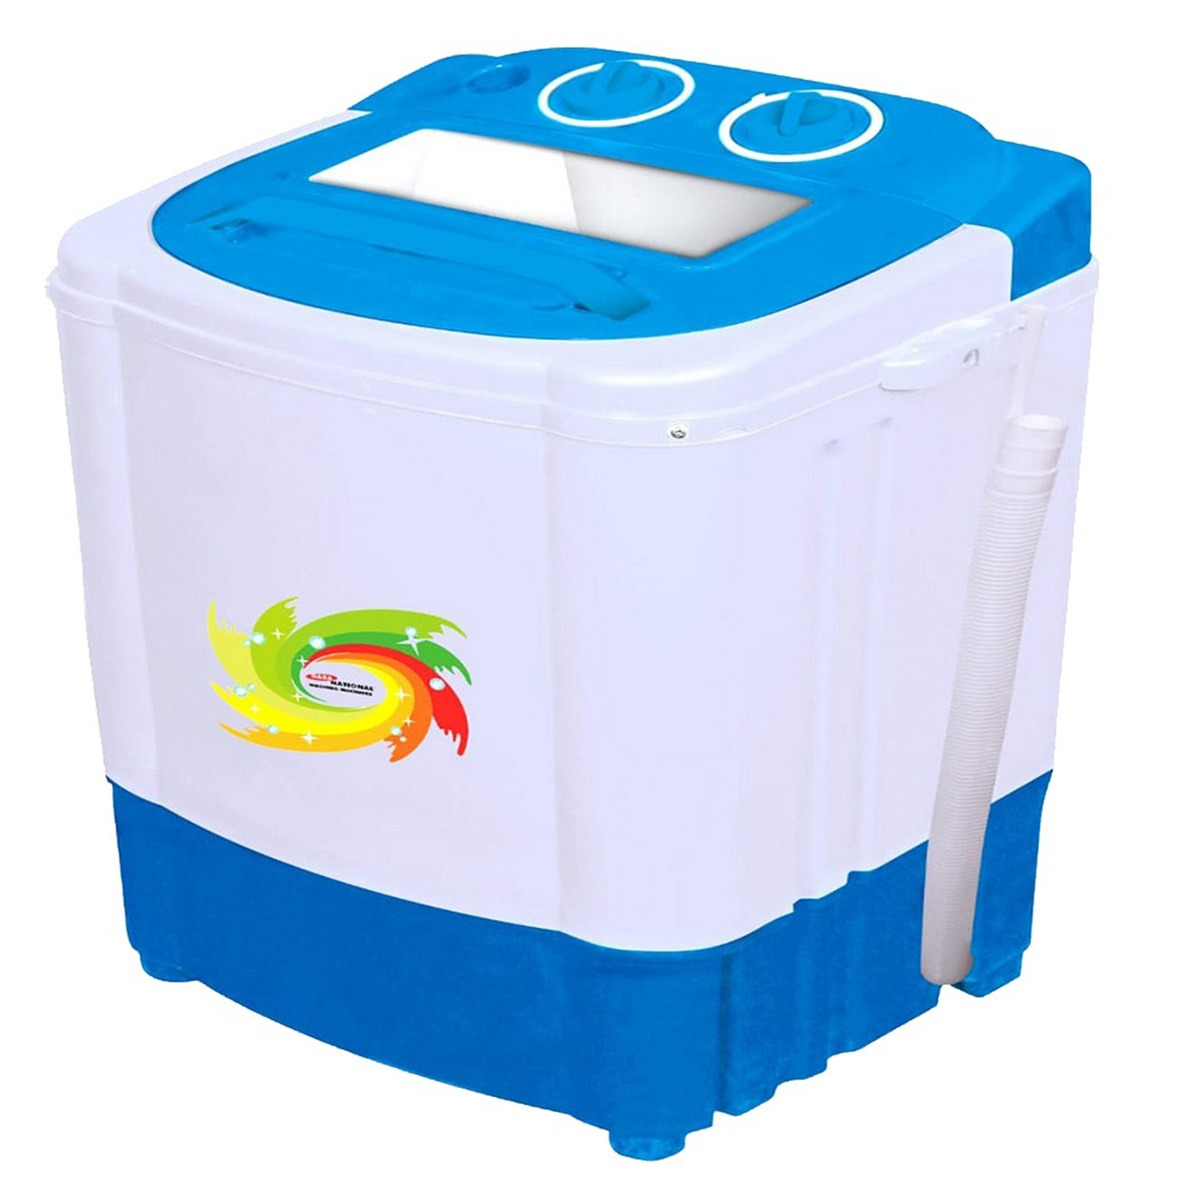 Gaba National Baby Washer With Spinner - Gnw-92020 - Blue- 2.5kg